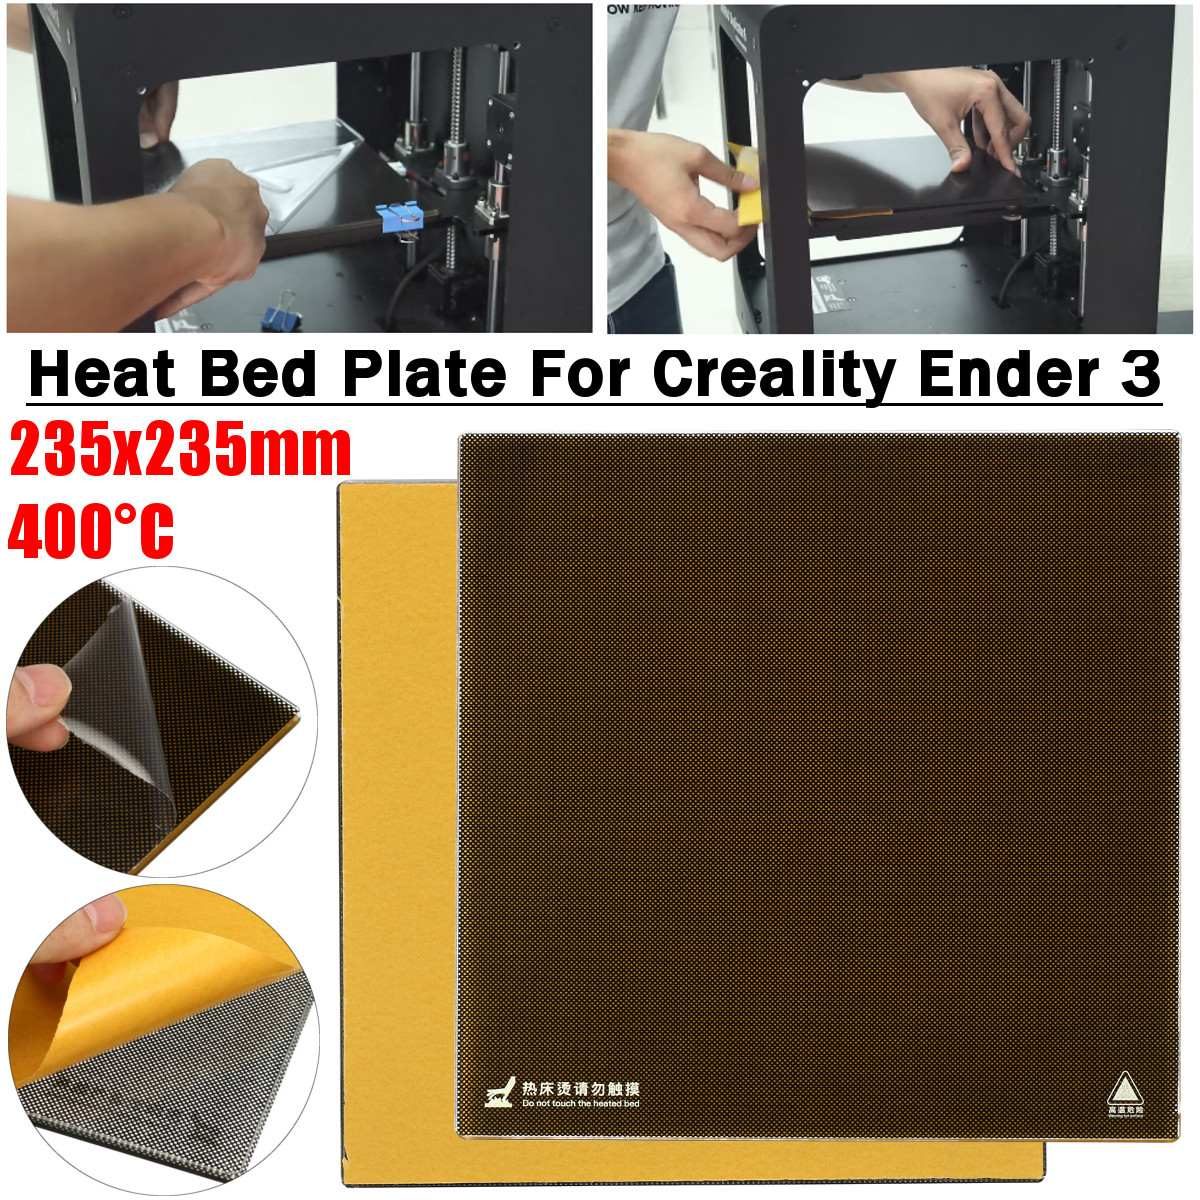 235 X 235mm 3D Printer Heat Hot Bed Sticker Coordinate Printed Surface Sticker Borosilicate Glass For Creality Ender 3 Printer